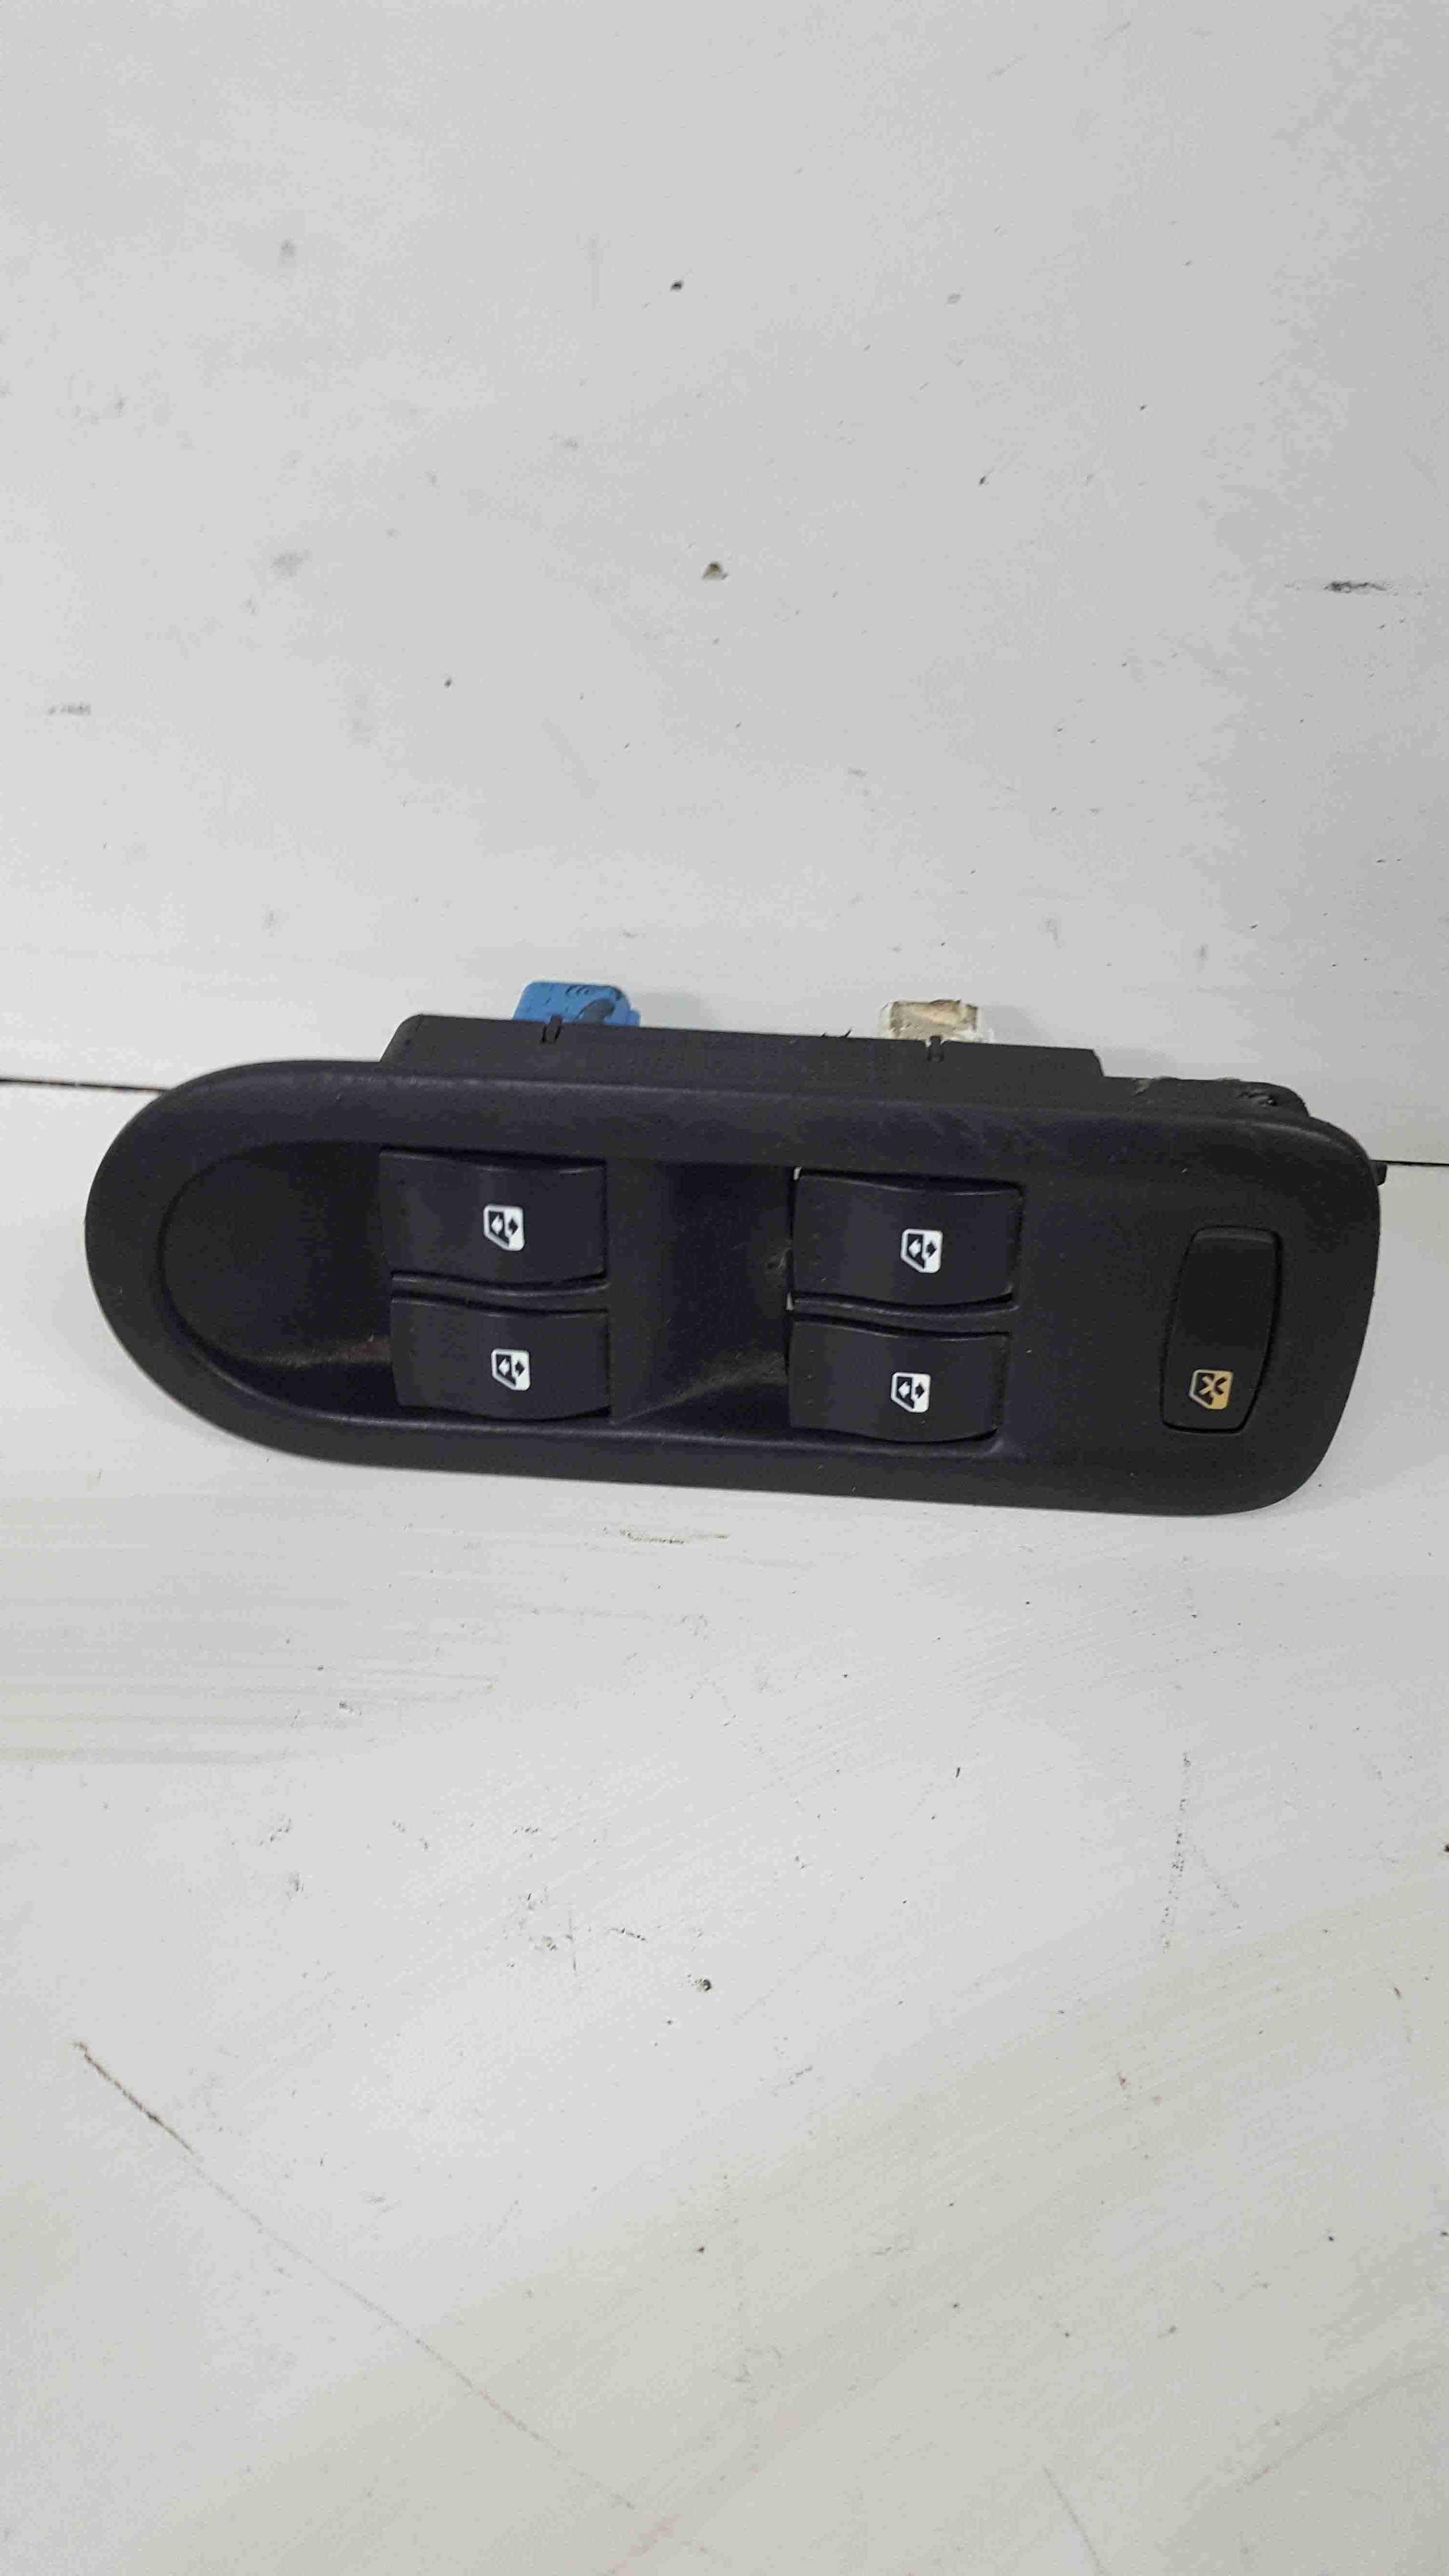 Renault Megane Convertible 2002-2008 Drivers OSF Front Window Switch Panel